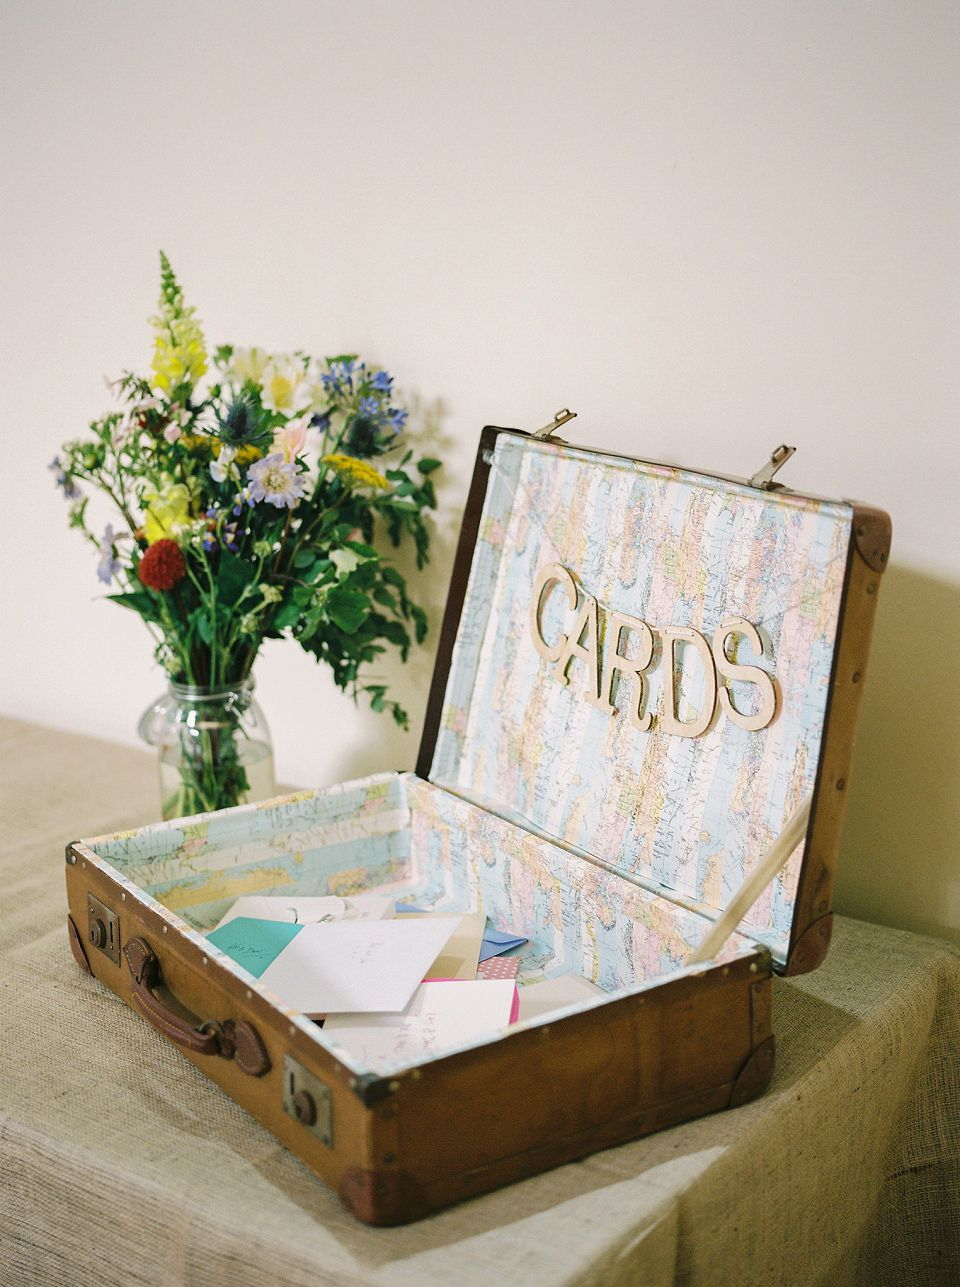 Wedding decoration ideas for village hall  A Pretty Village Hall Wedding of Laid Back and Pared Down Elegance